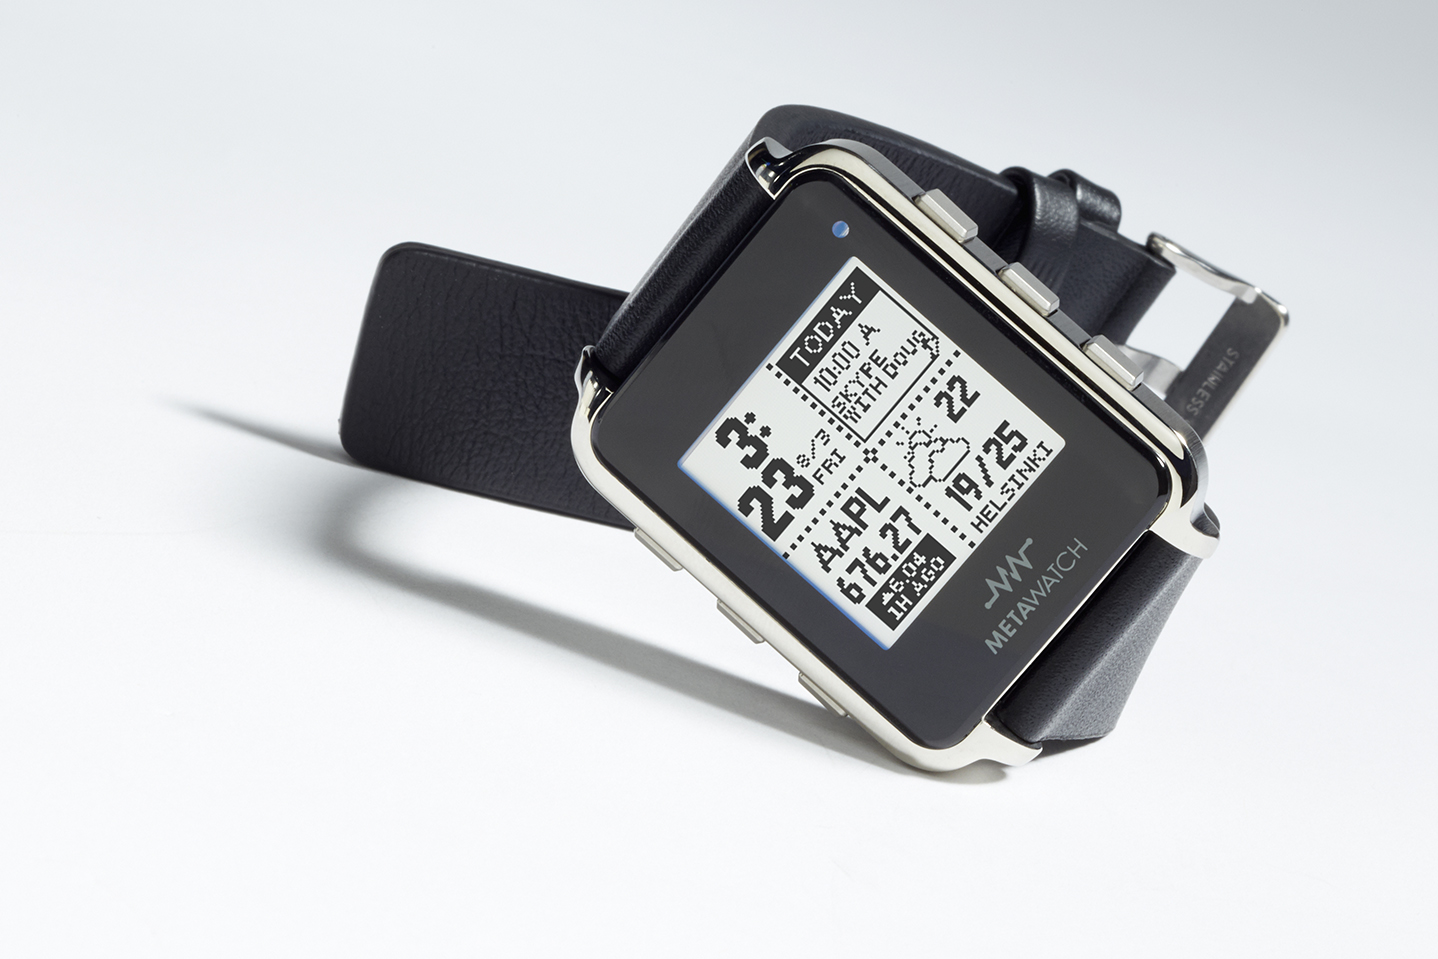 Metawatch Wikipedia Digital Watch Circuit